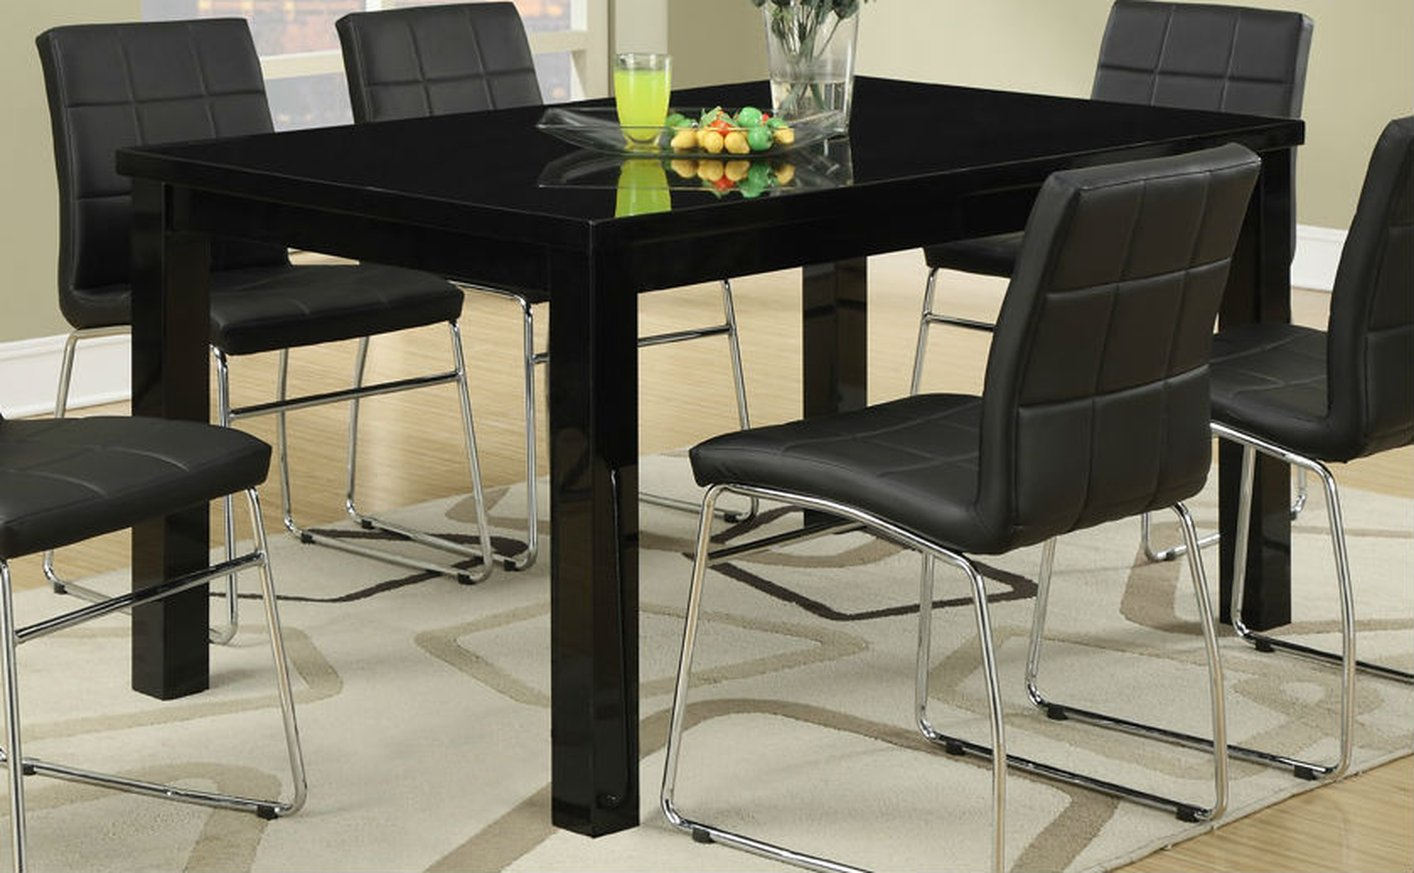 pndf2411 p4734_1__28769.1410263933.1280.1280 black-wood-dining-table-515 : poundex dining table set - pezcame.com